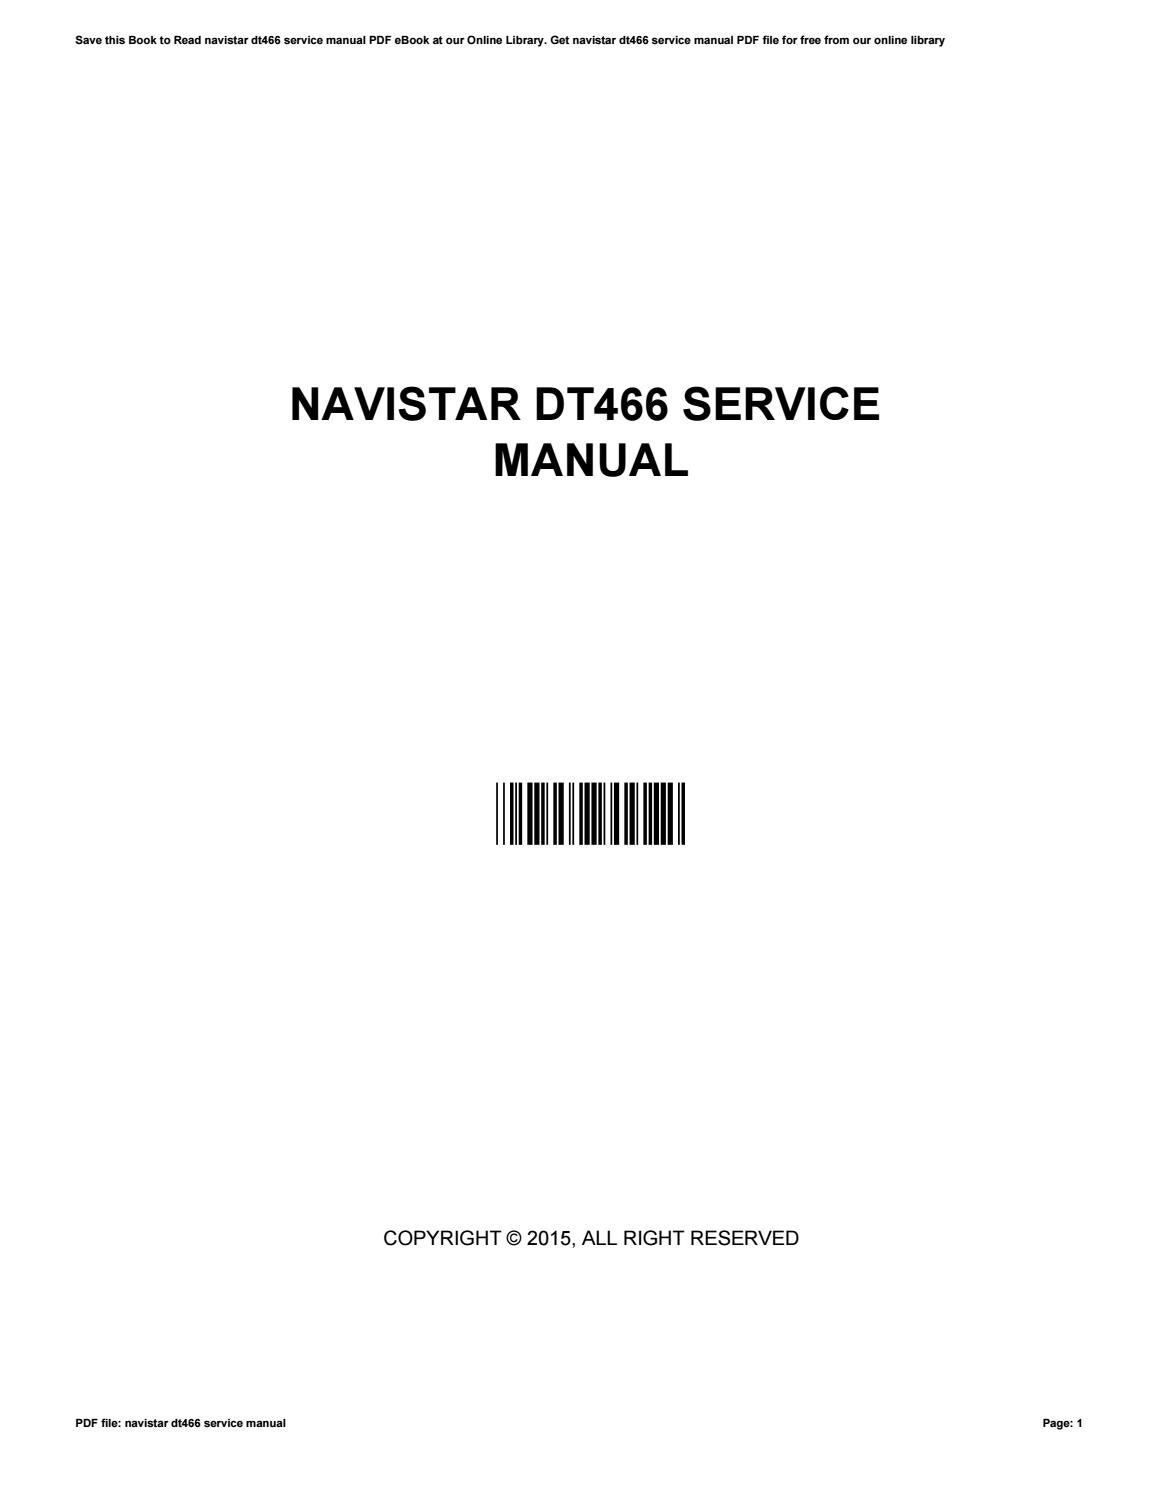 Dt466 Navistar manual on